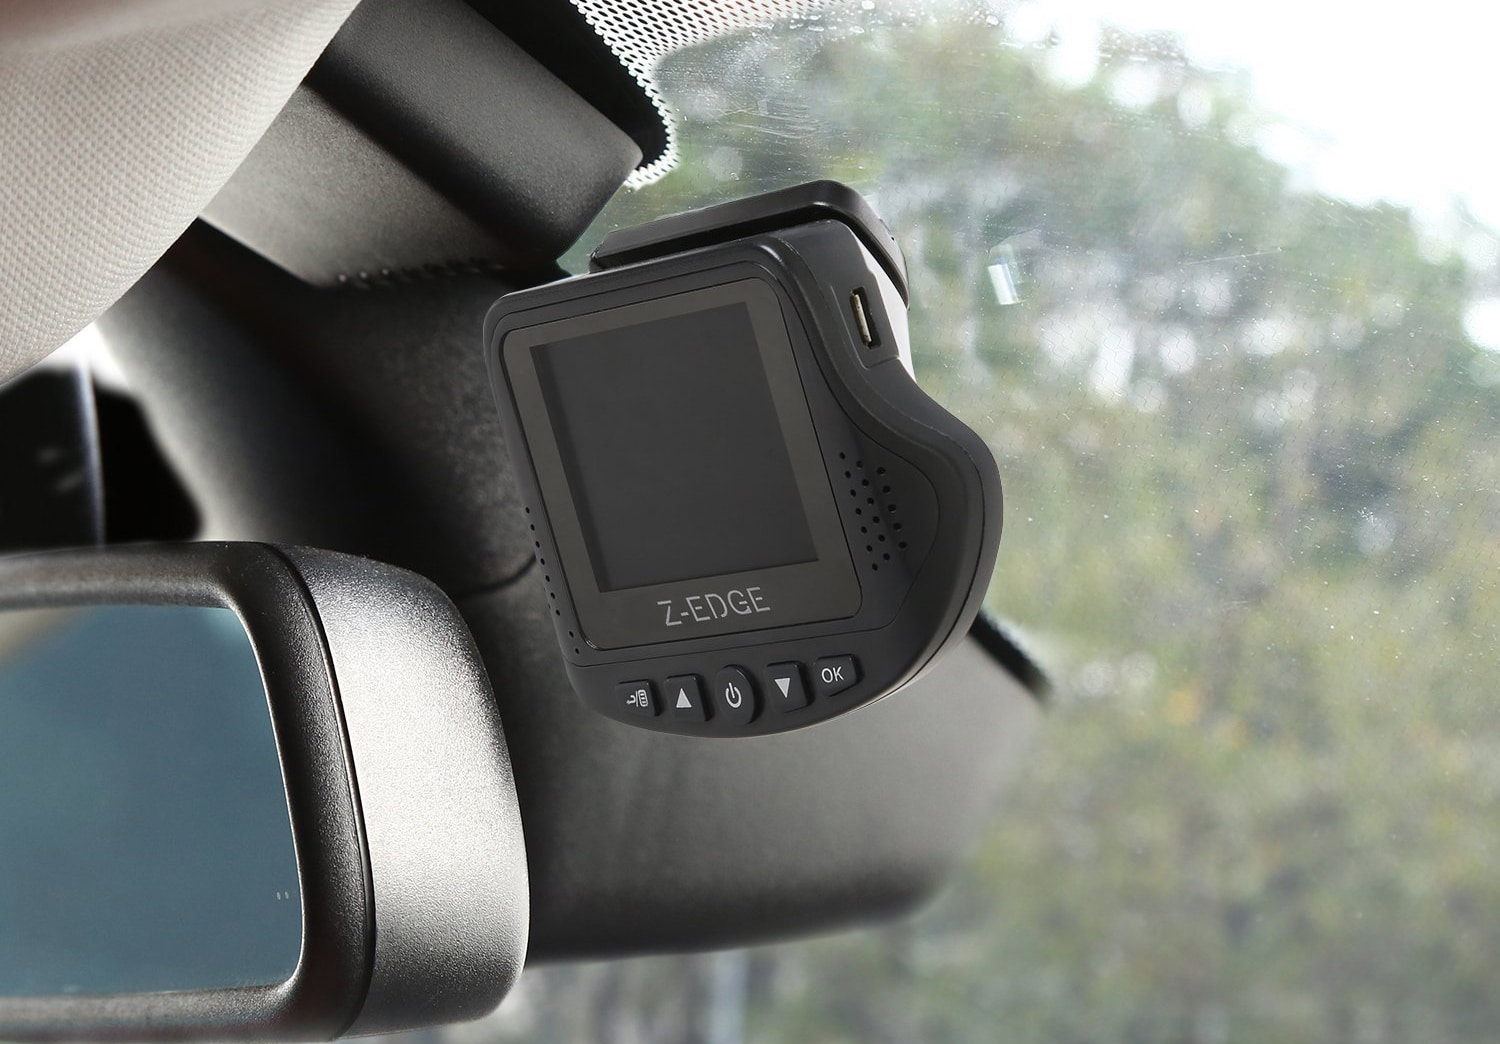 The 12 Best Dashcams In 2019 Full Hd Gps Night Vision Garmin 18 Pc Wiring Diagram With Sophisticated Camera Technology And Storage Capacity You Have Plenty Of Options When It Comes To Picking Out A Dashcam For Your Vehicle